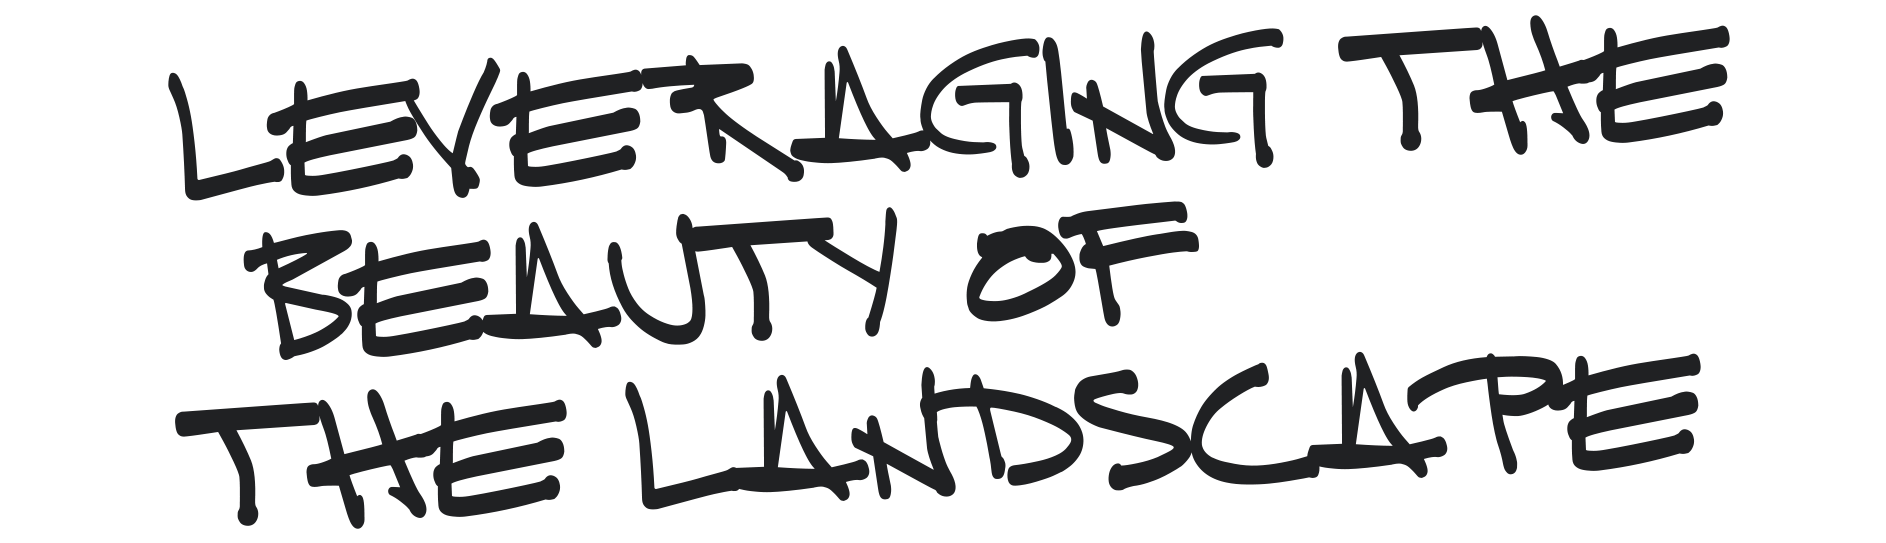 Leveraging the beauty of the landscape